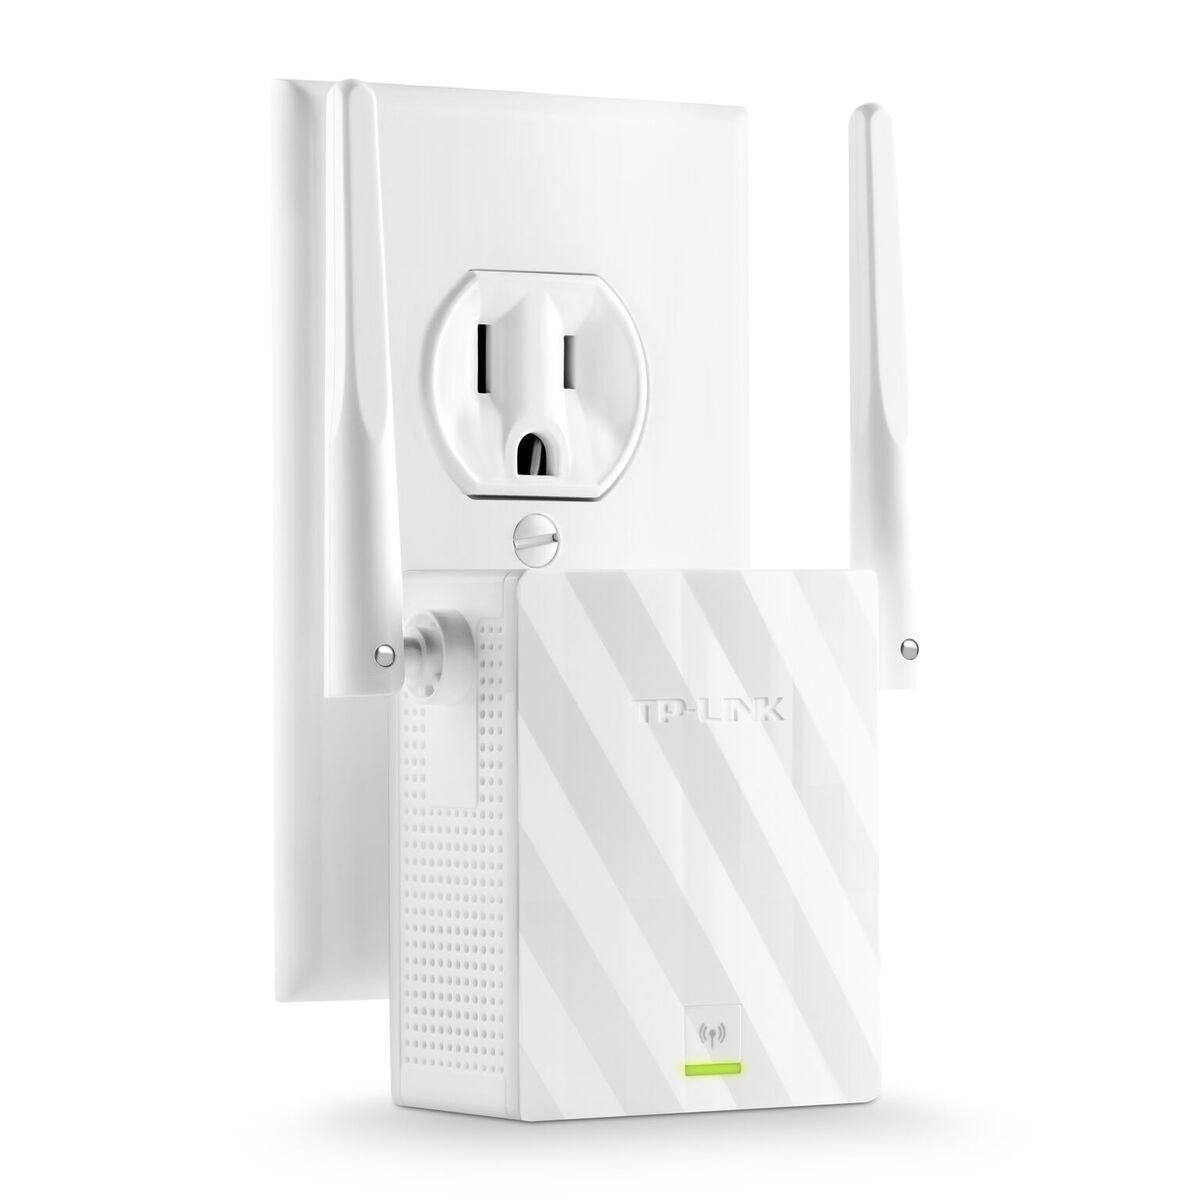 TP-Link N300 WiFi Range Extender with External Antennas and Compact Design (TL-WA855RE) by TP-Link